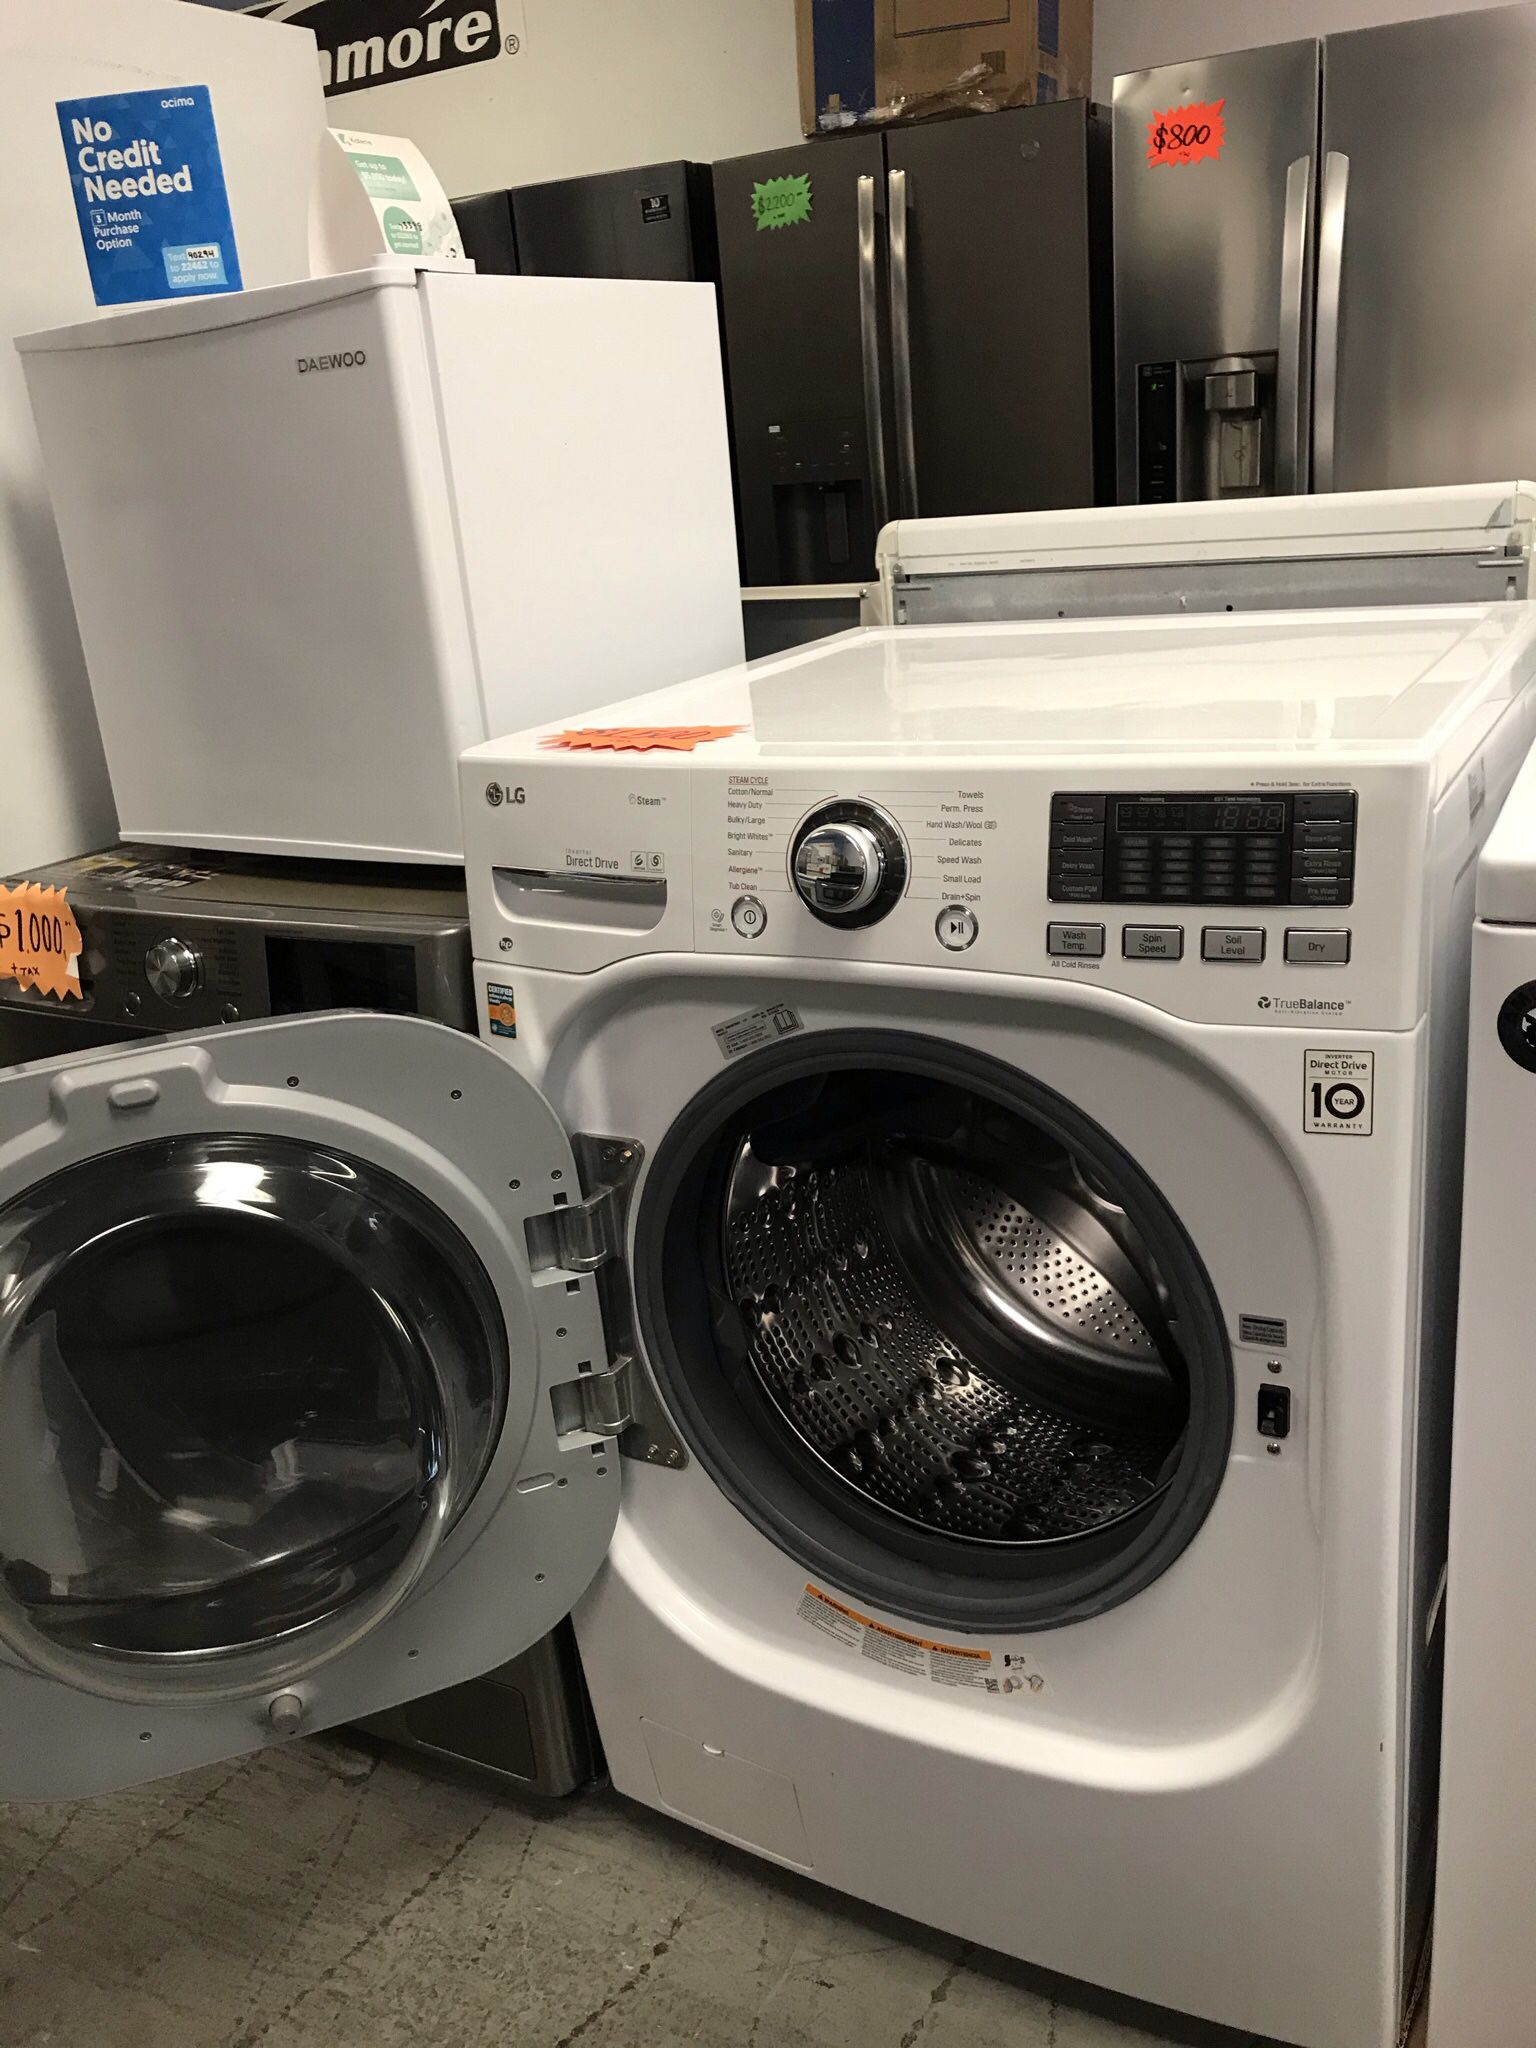 LG WASHER AND DRYER ALL IN ONE BRAND NEW OPEN BOX